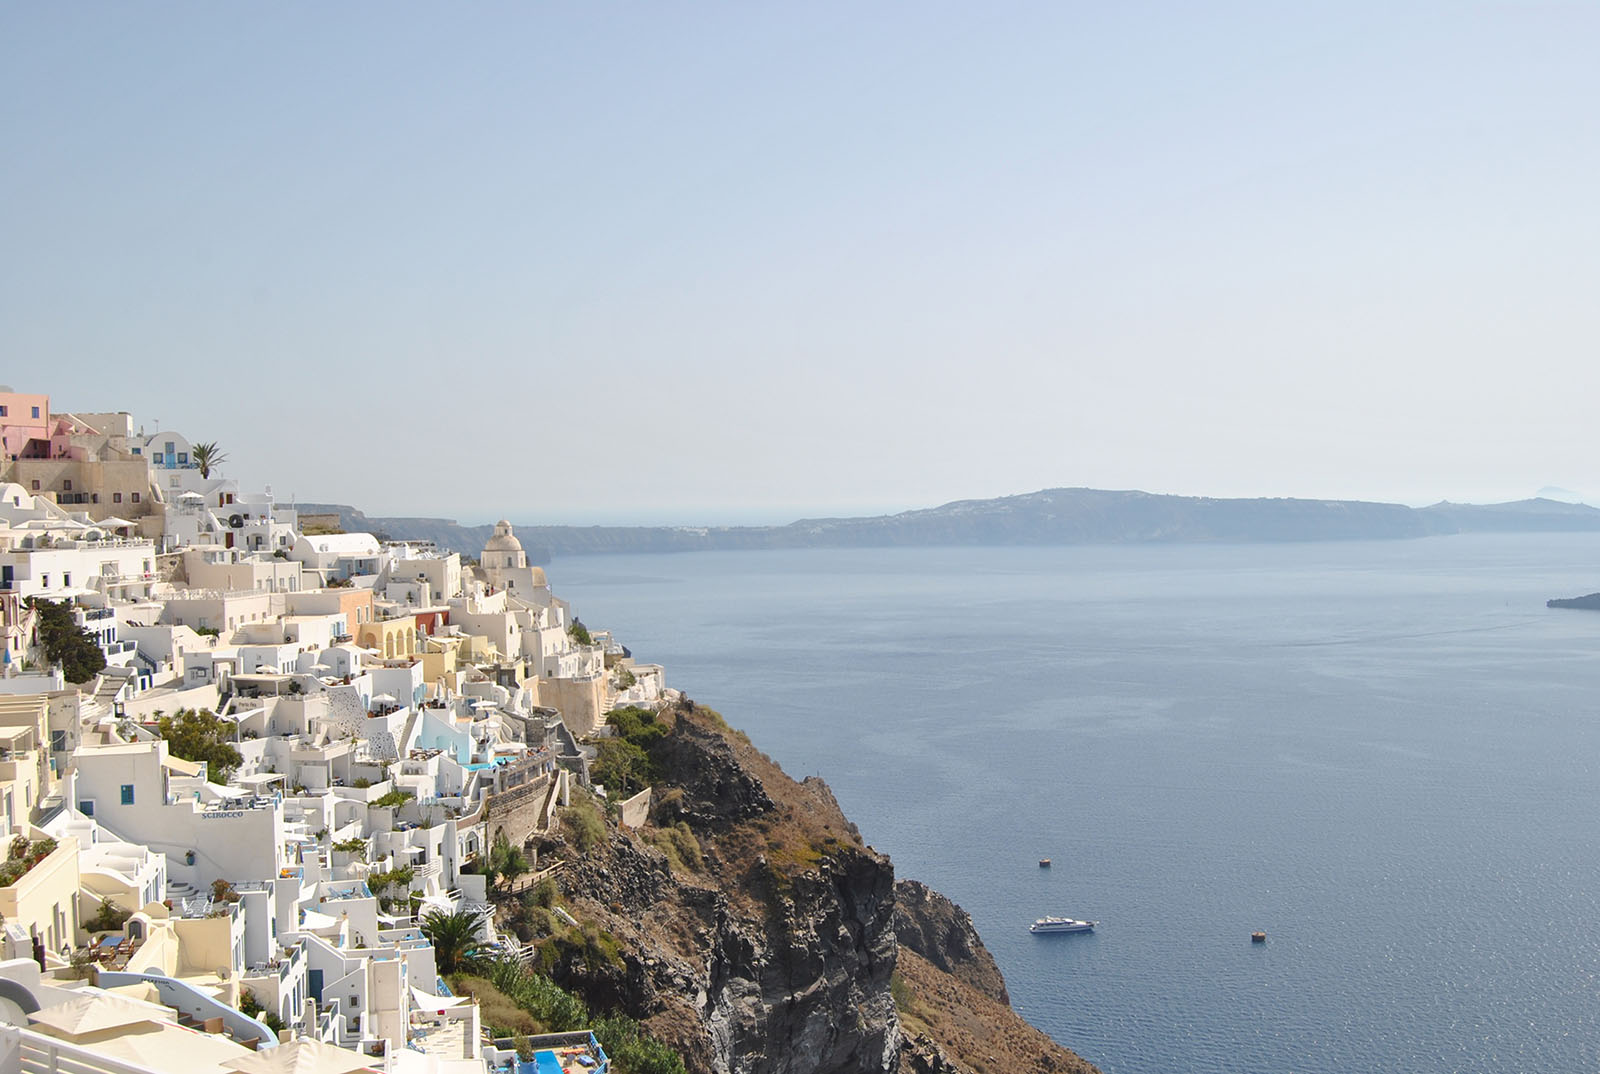 Island Hopping: A Day in Santorini